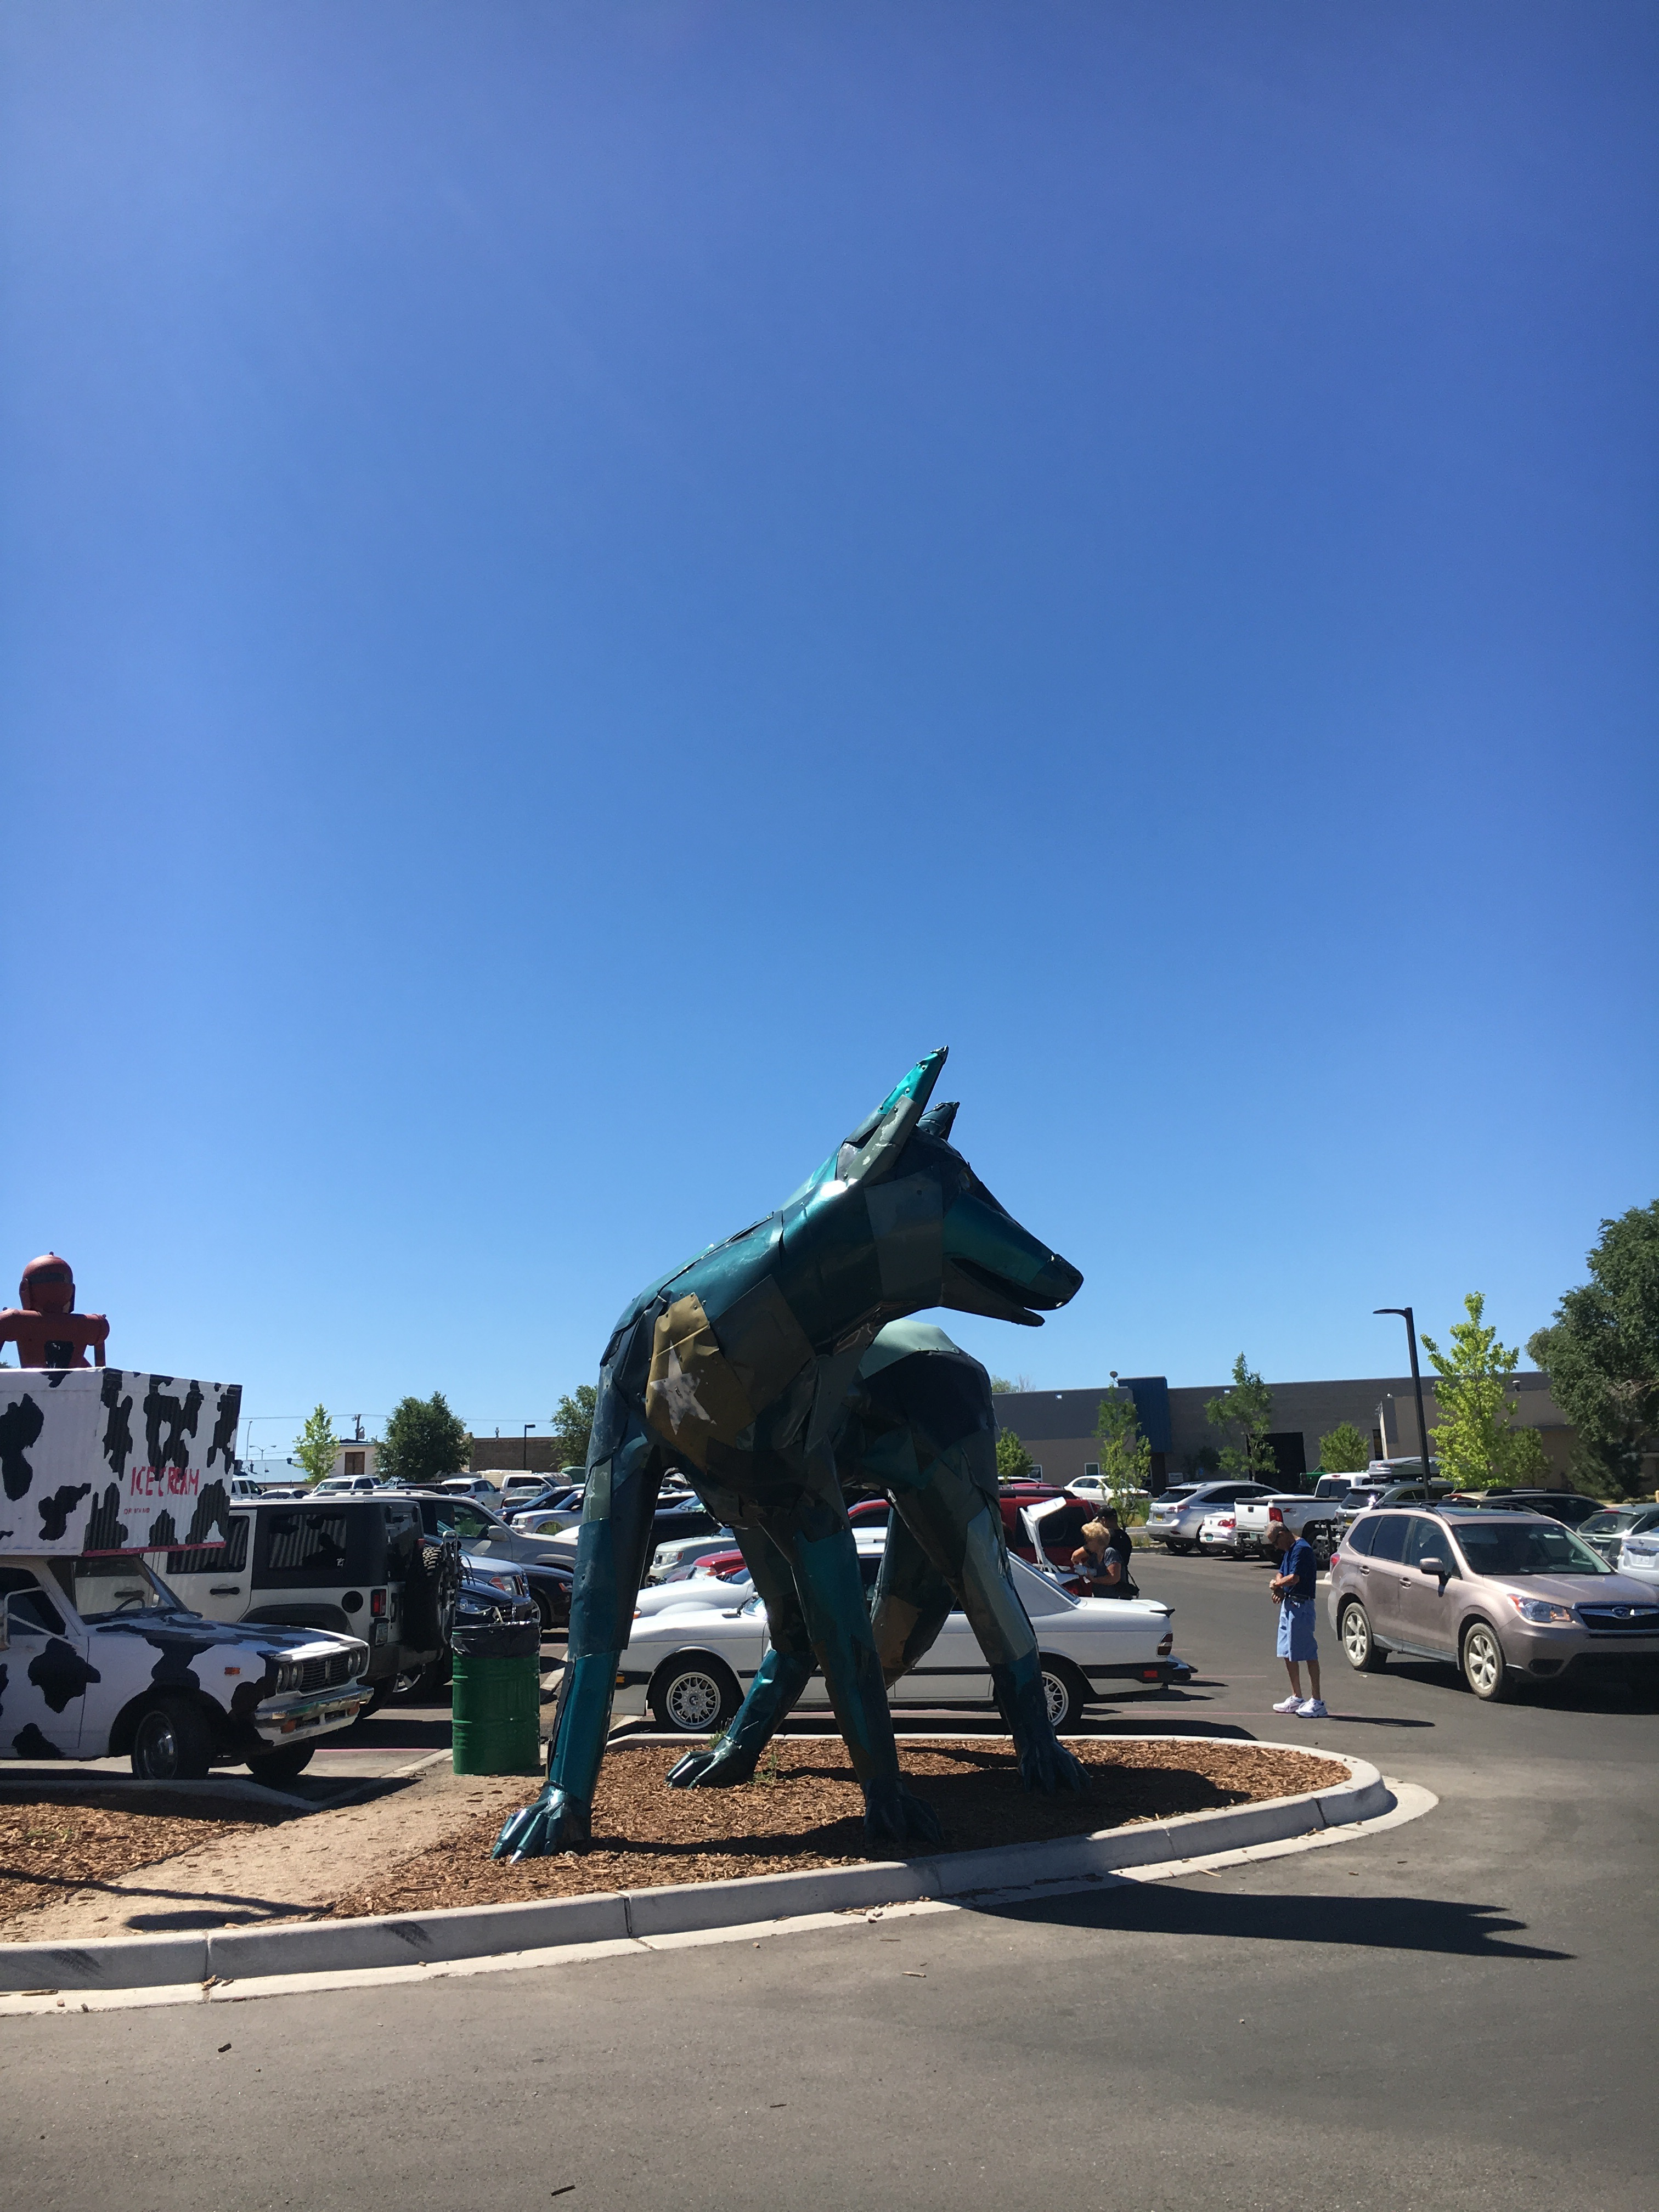 wolf outside at meow wolf